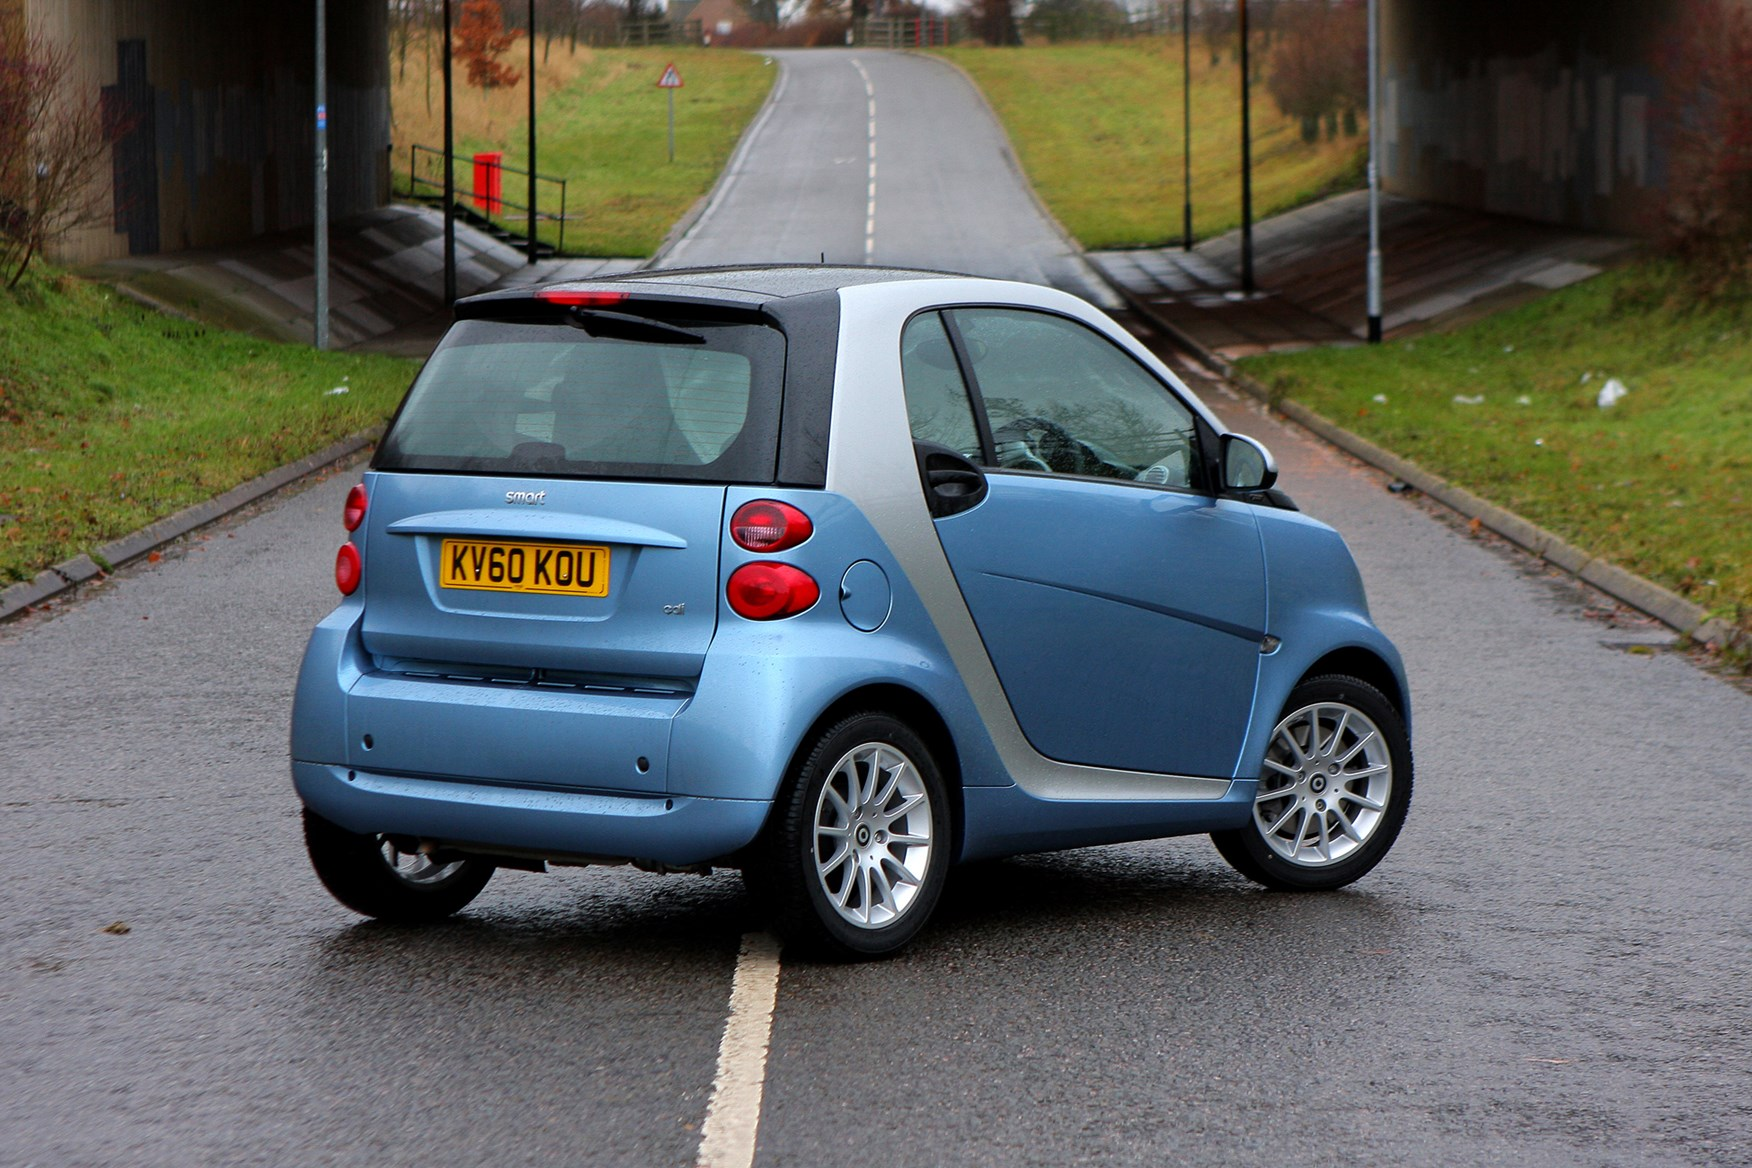 Smart Fortwo Coupe Review 2007 2014 Parkers Fuse Box Location How Much Is It To Insure